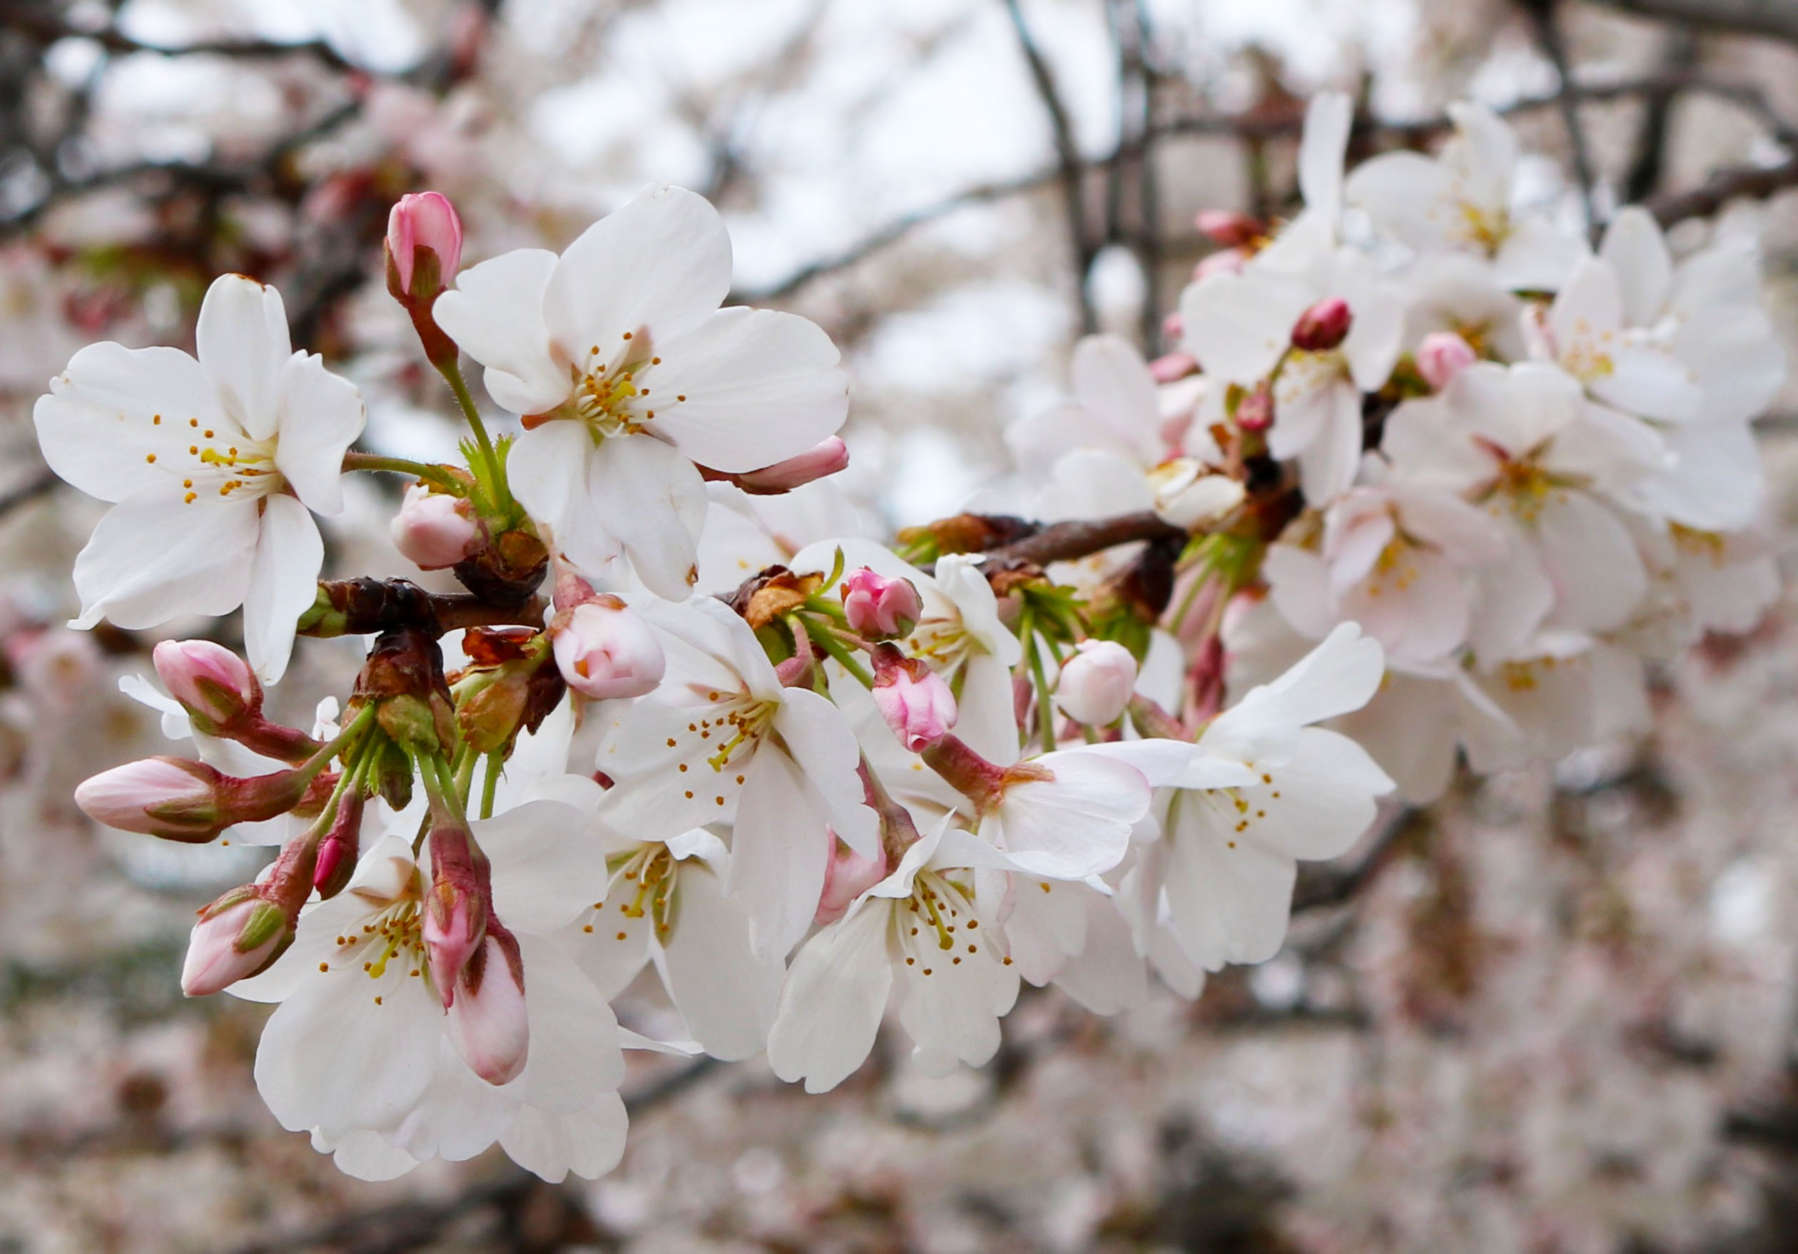 On March 26, 1912, 3,020 cherry trees arrived in D.C. and were planted along the Tidal Basin. The blooming beauties have pleased many crowds since then. (WTOP/Hanna Choi)